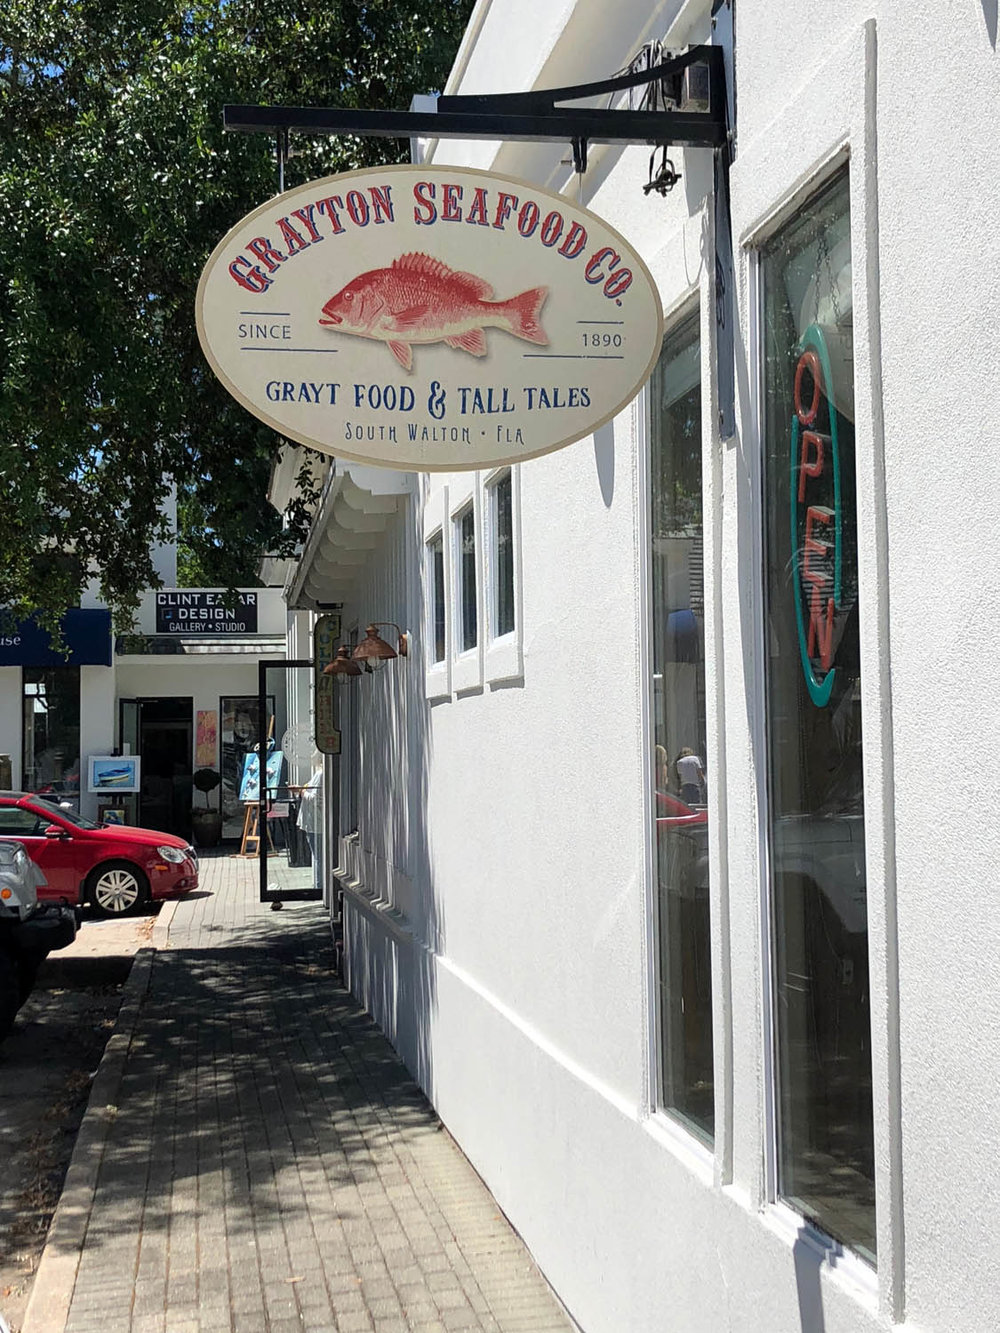 Grayton Seafood Company restaurant in Grayton Beach, Florida